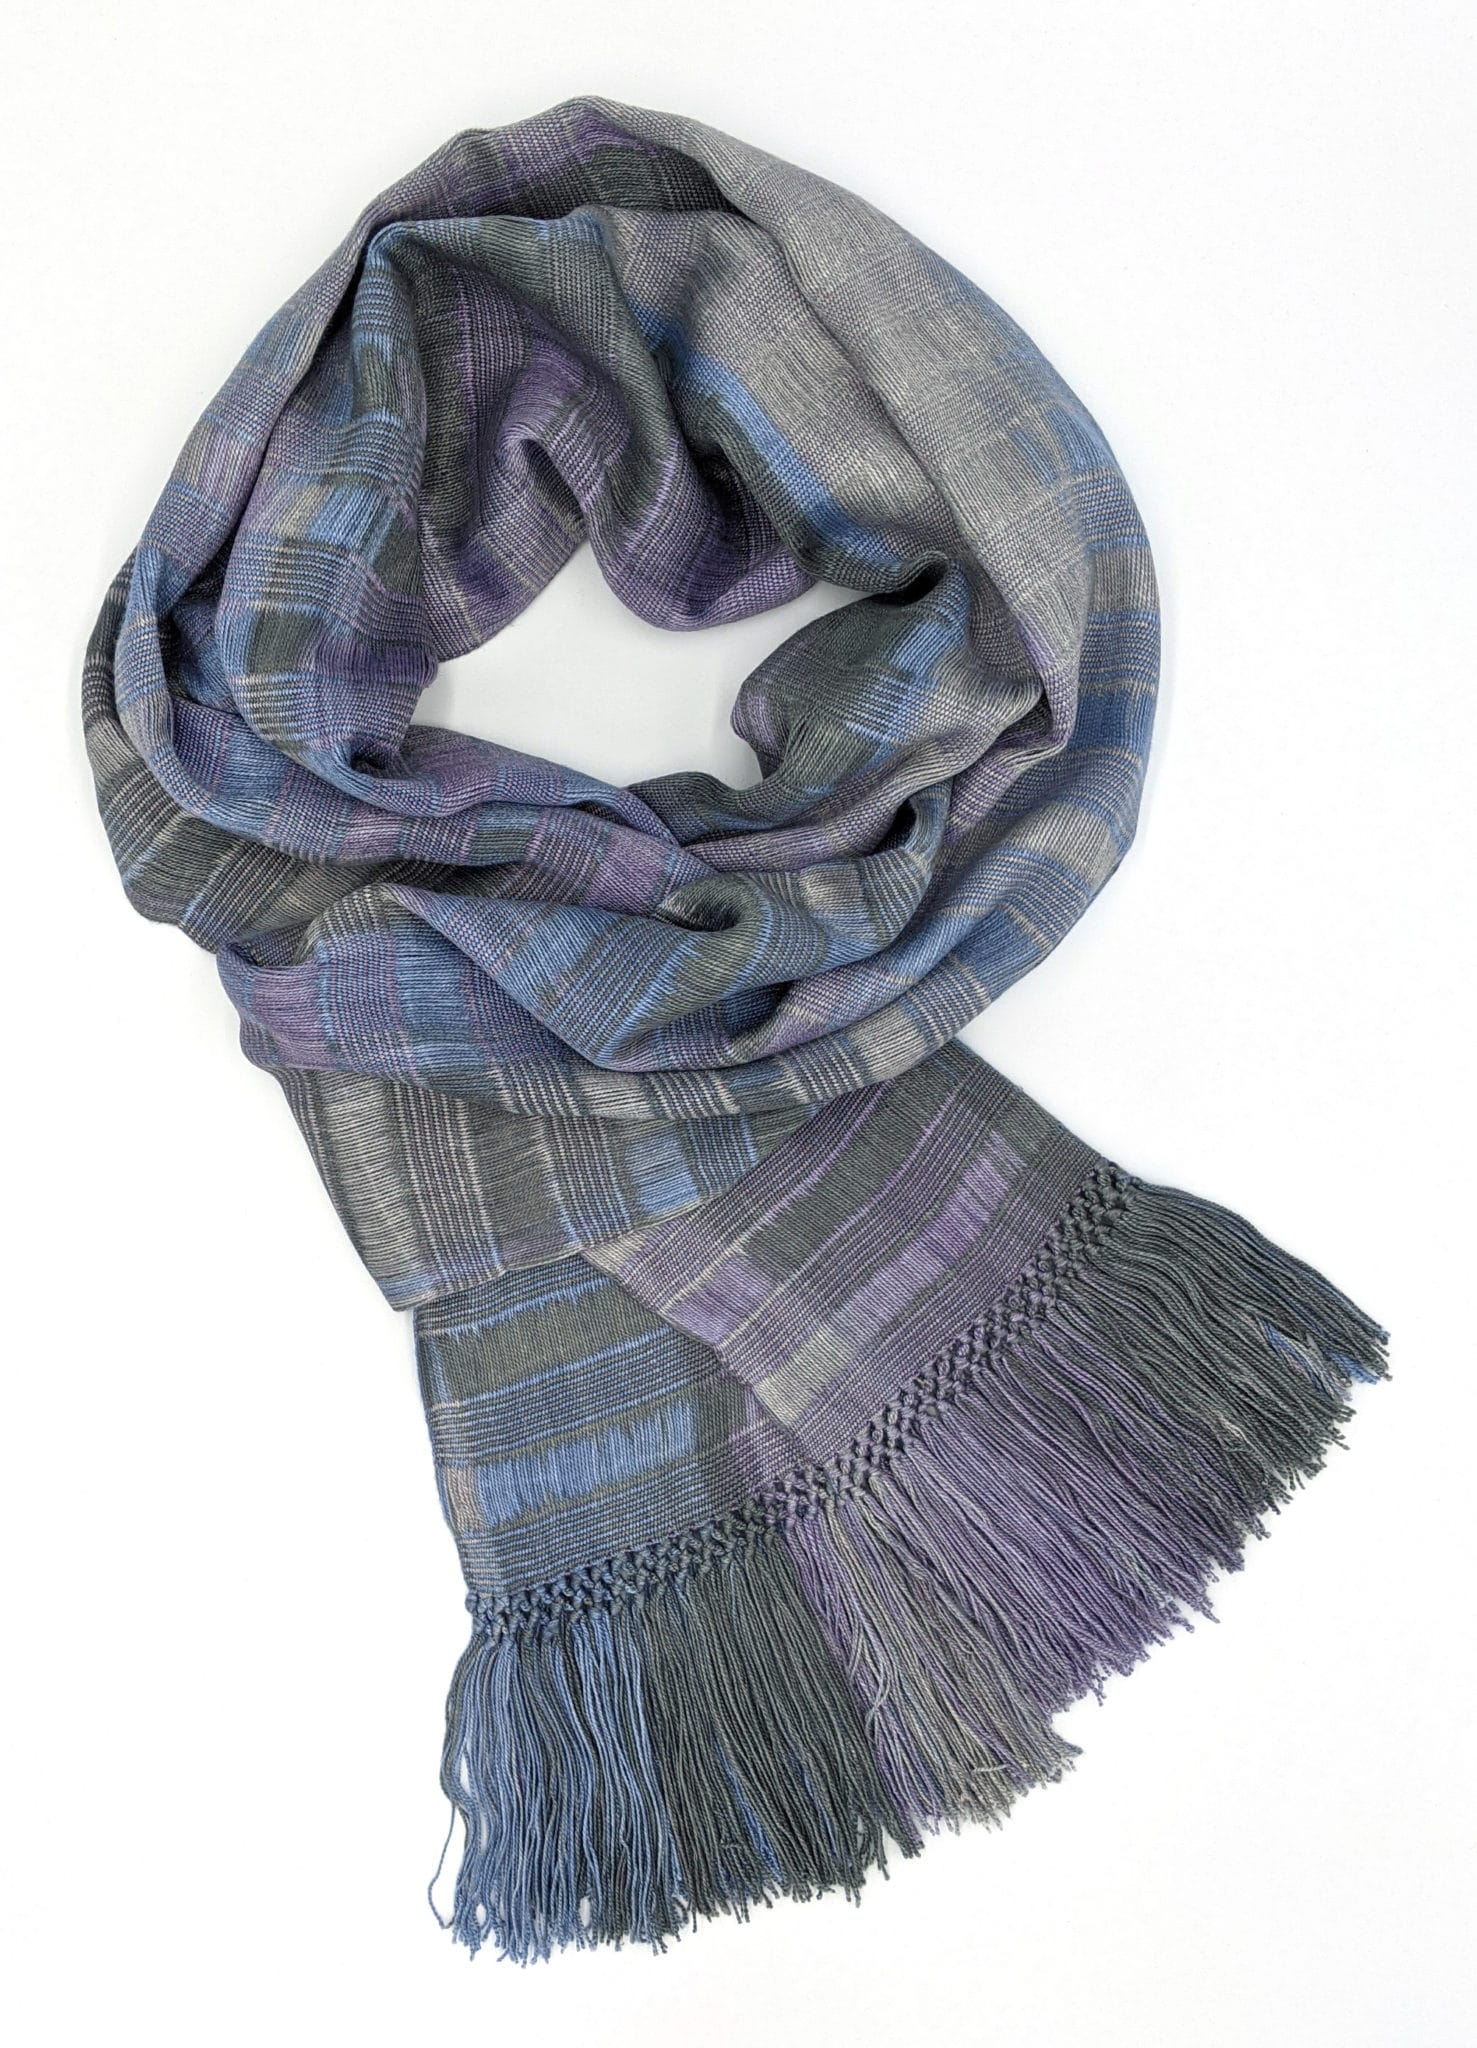 Lilac, Pale Blue, Gray - Lightweight Bamboo Open-Weave Handwoven Scarf 8 x 68